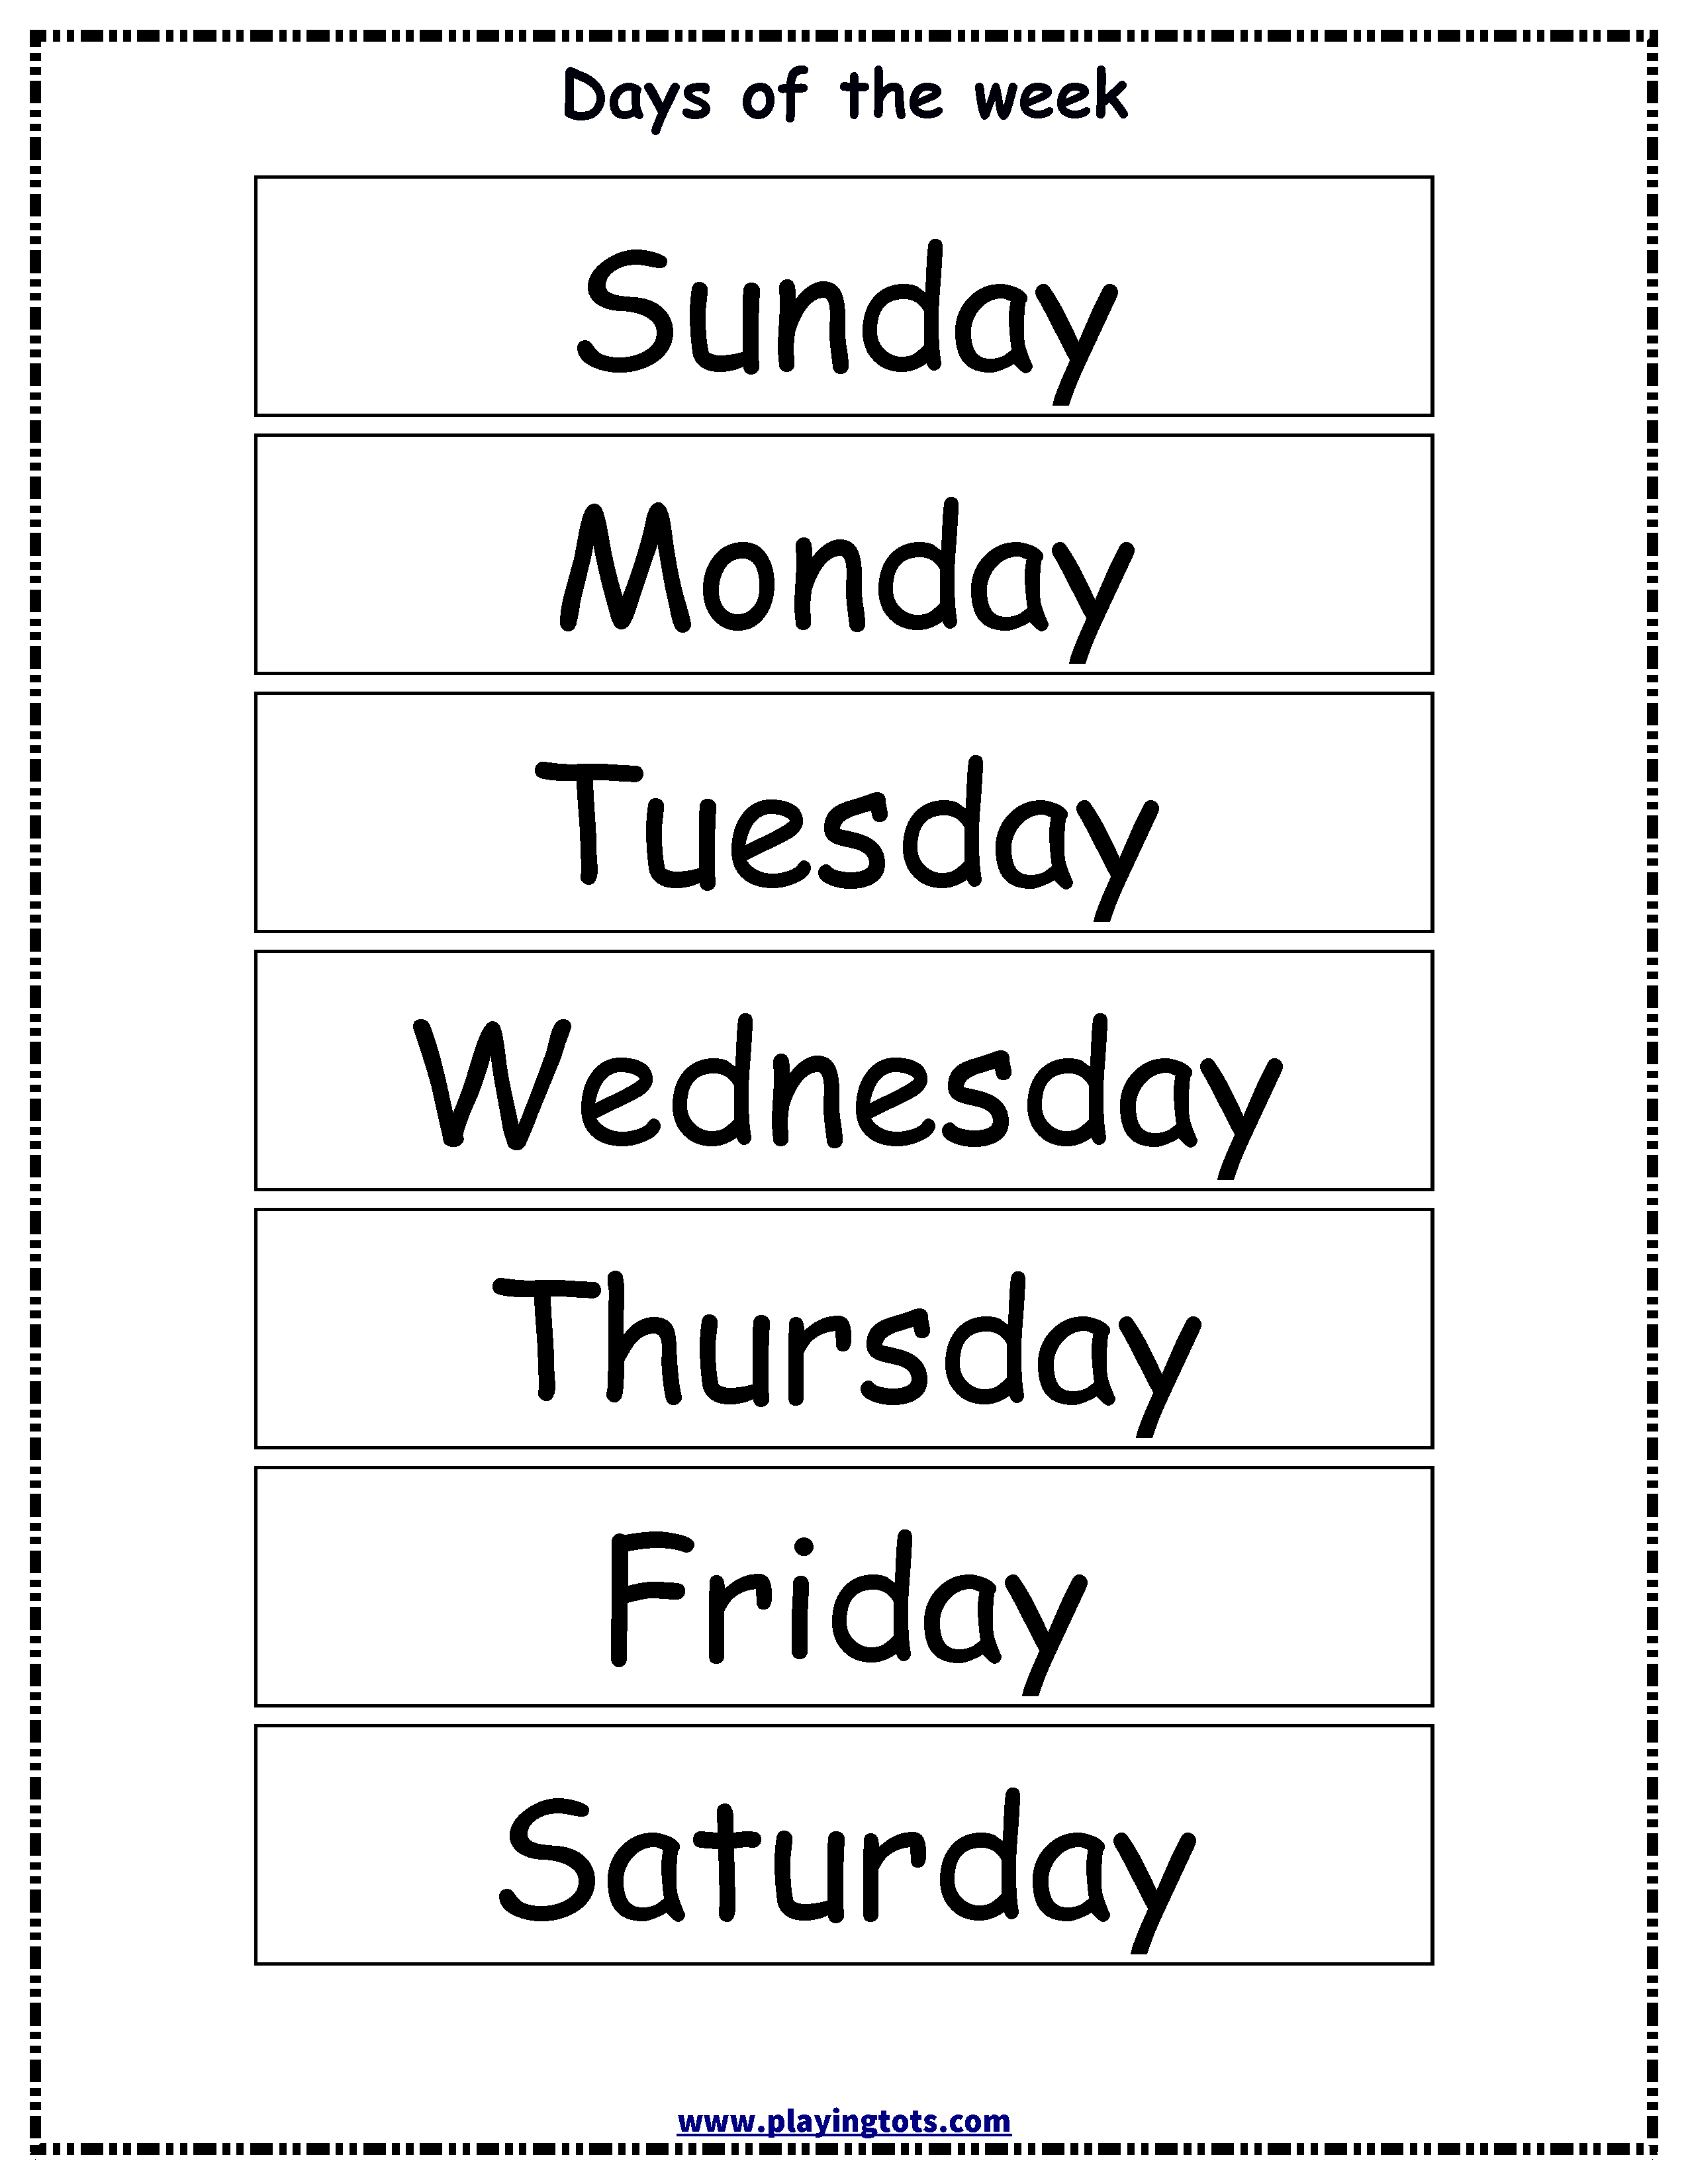 Delicate image in printable days of the week chart